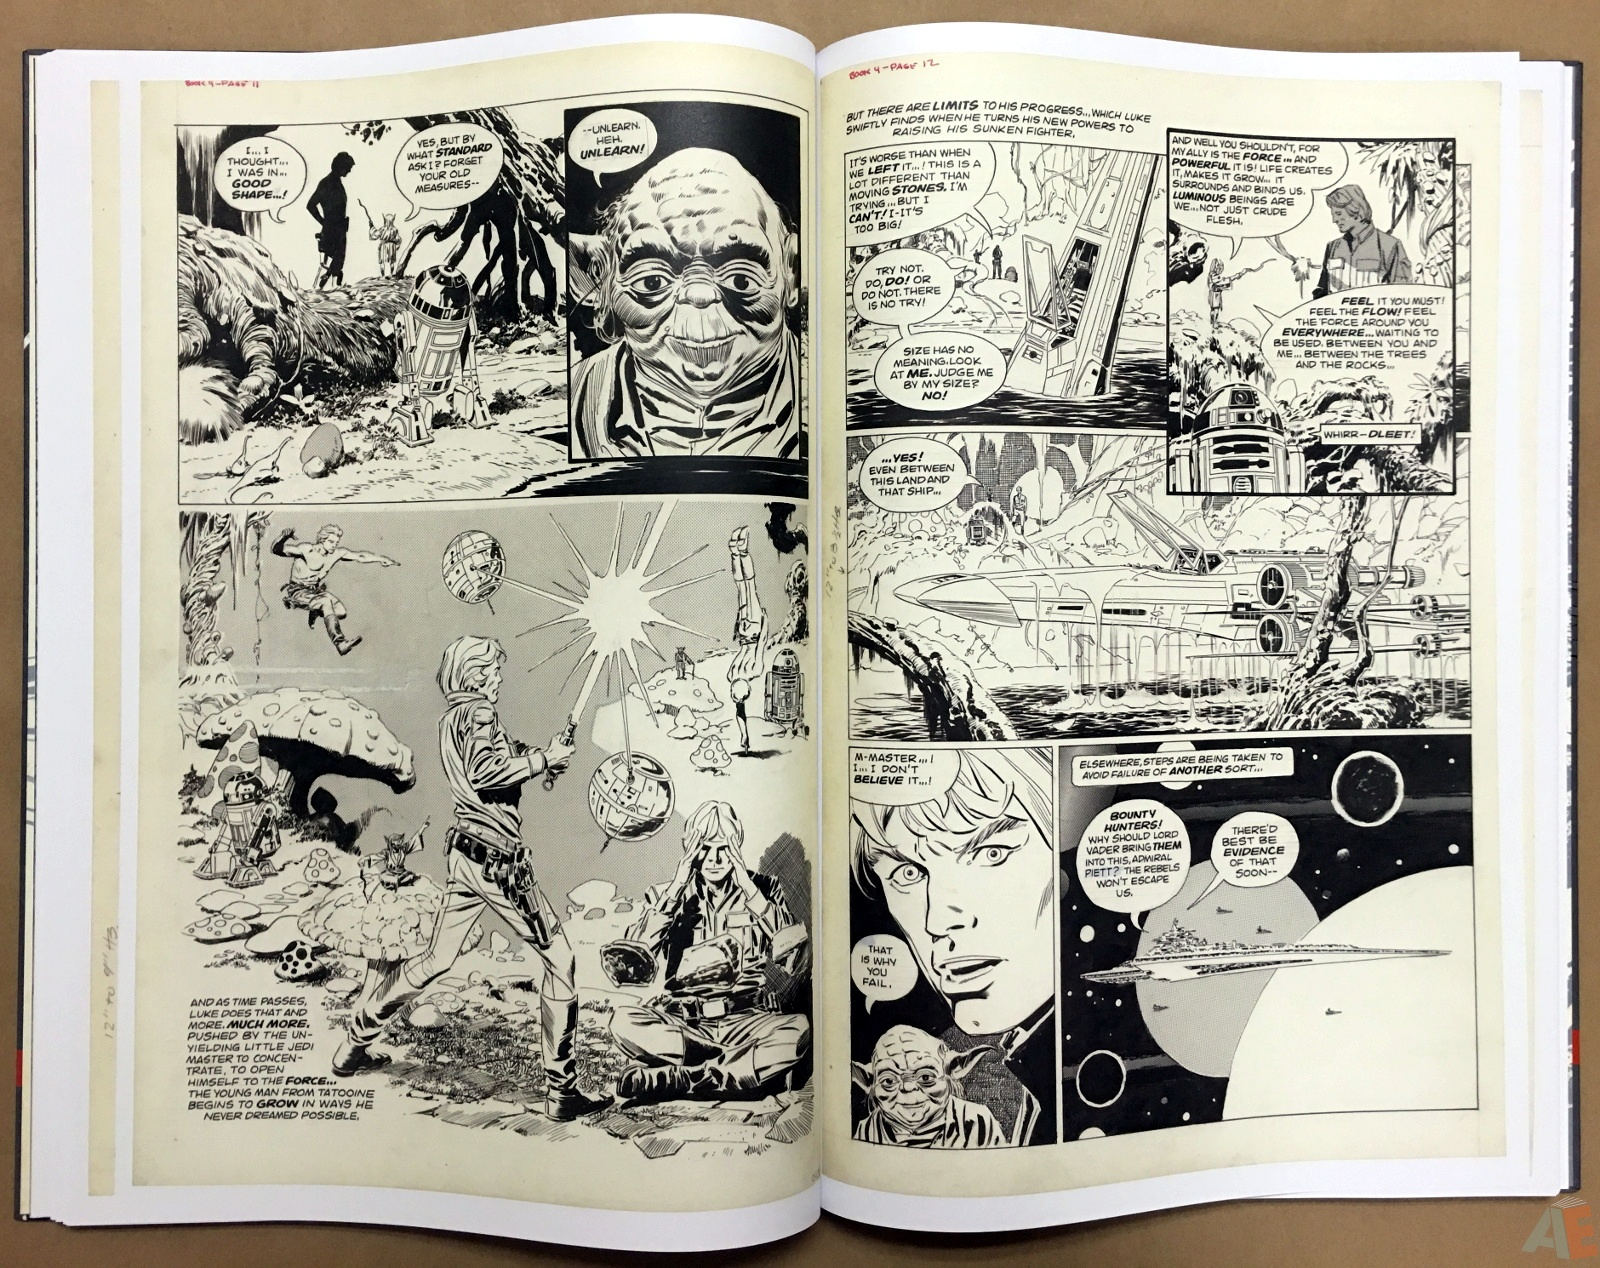 Al Williamson's Star Wars: The Empire Strikes Back Artist's Edition 24